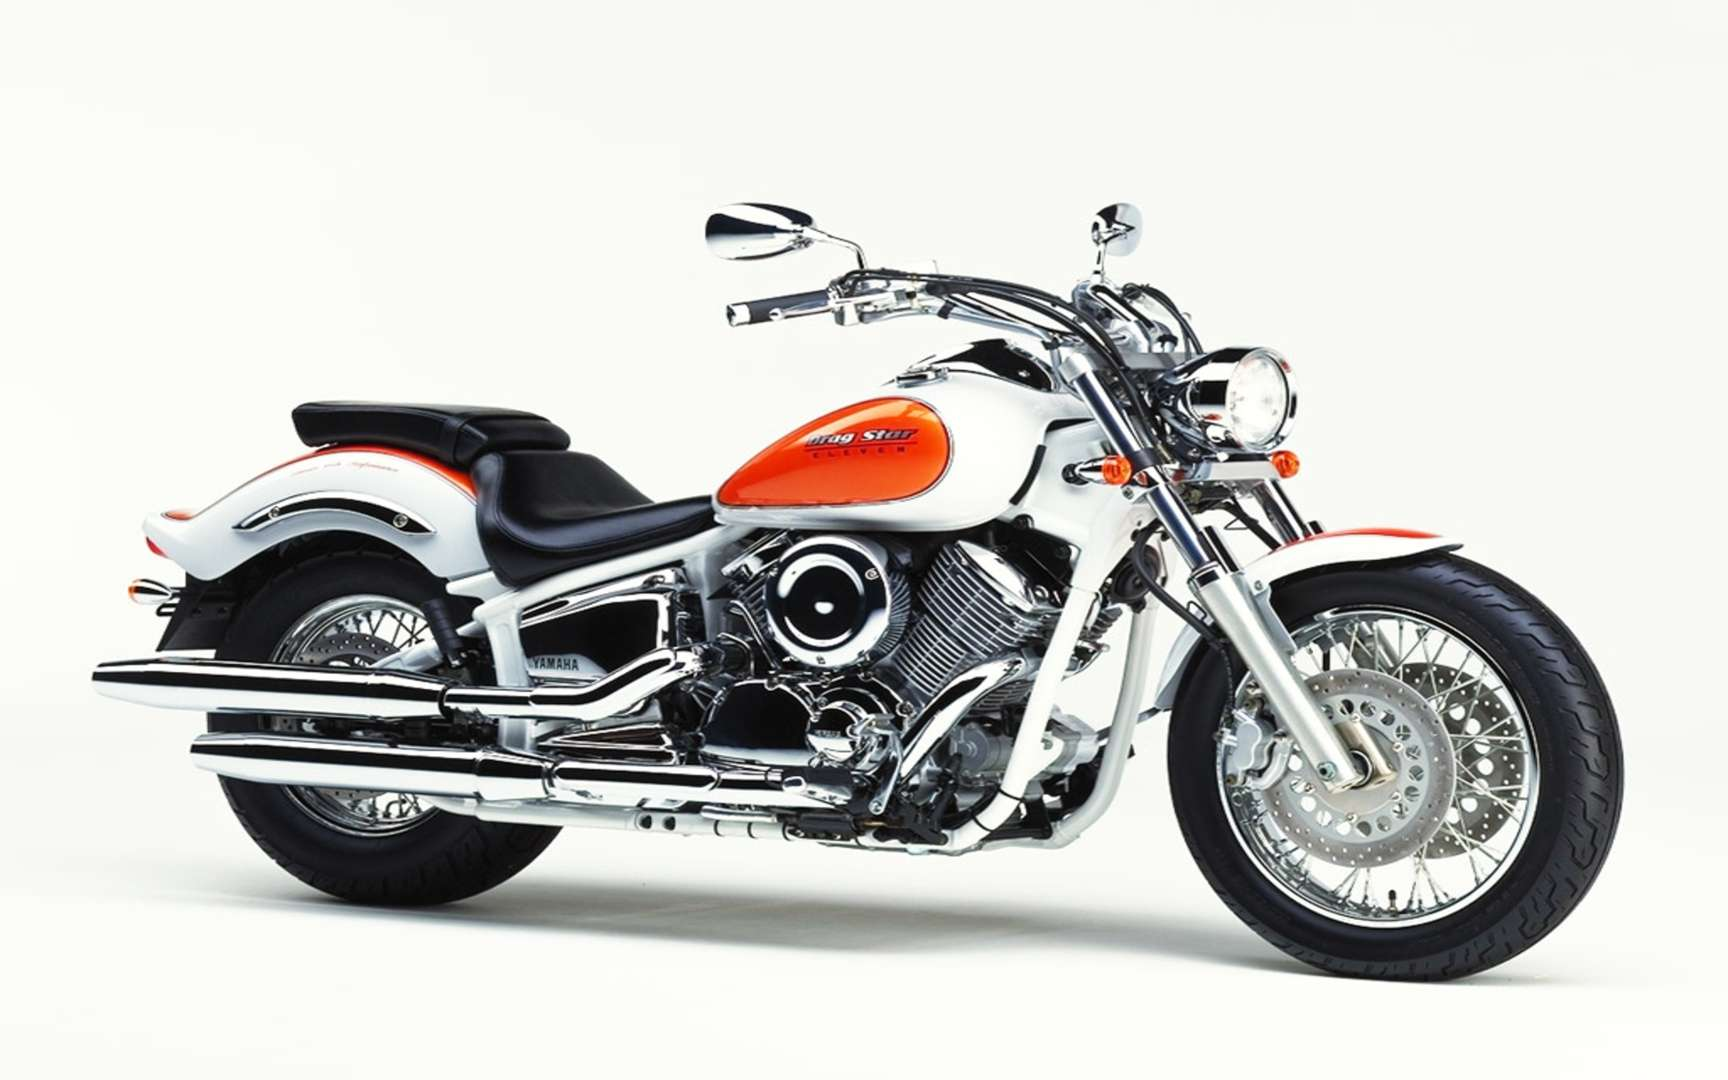 Yamaha Drag Star #8114472